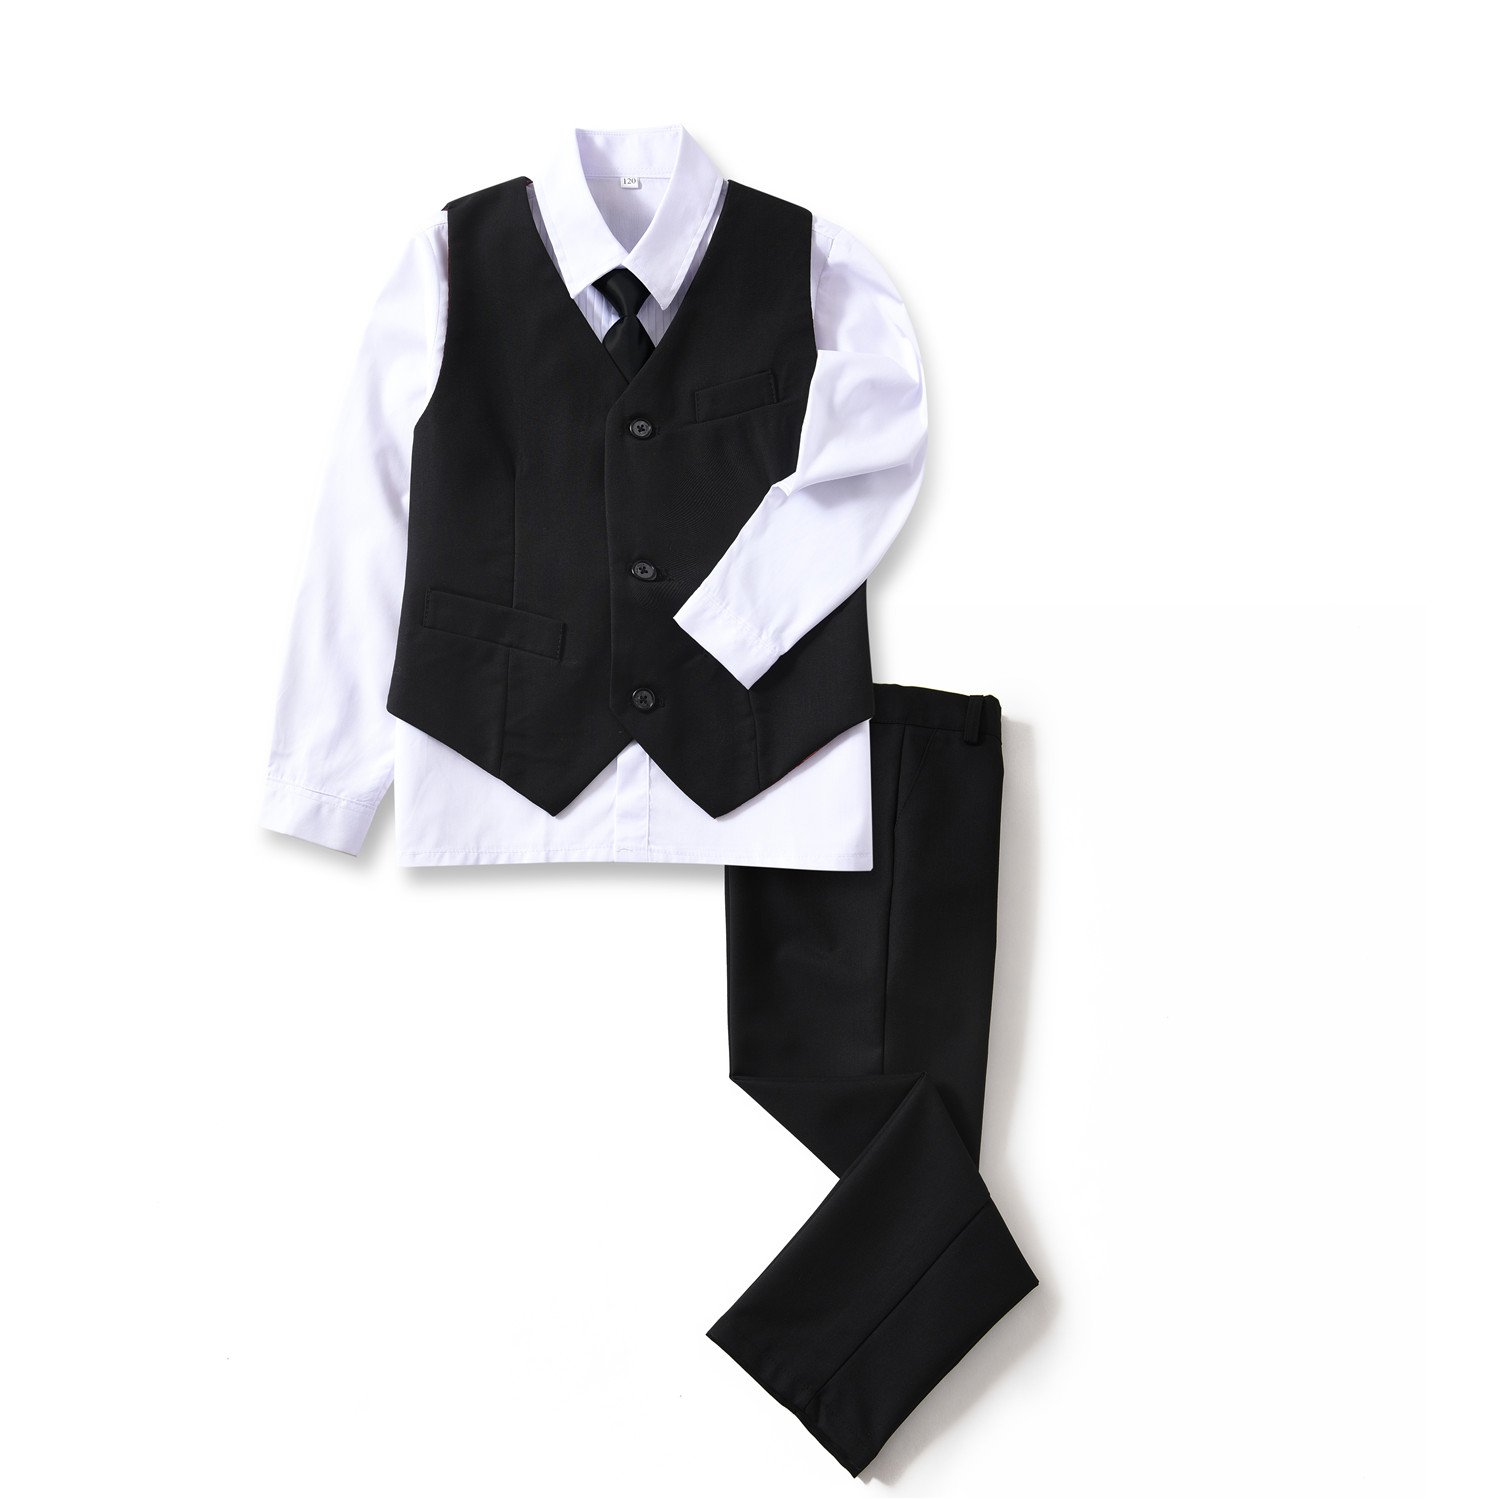 Yuanlu 4 Piece Boys' Formal Suit Set with Black Vest Pants White Dress Shirt and Tie Size 6